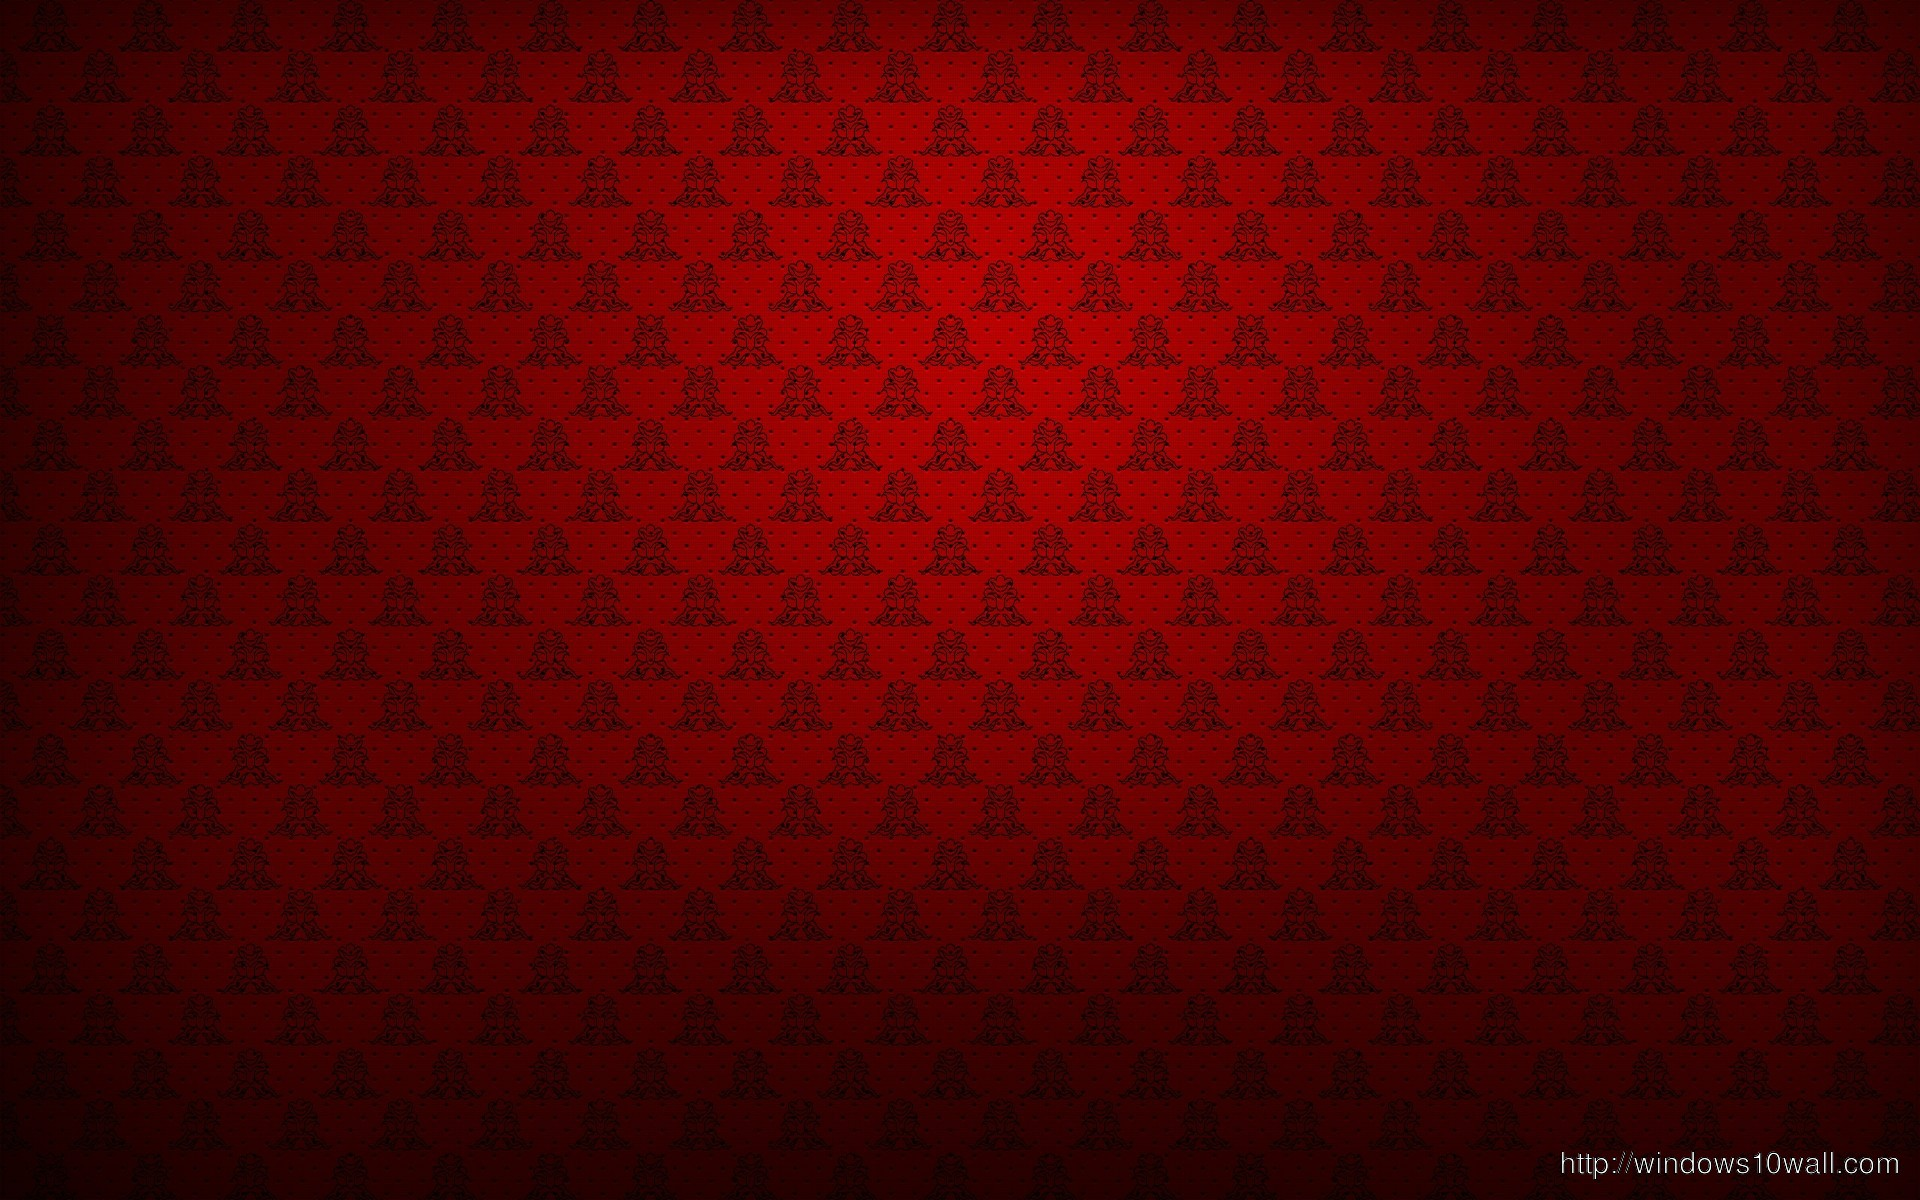 Fresh New Red Checks Background Wallpaper - windows 10